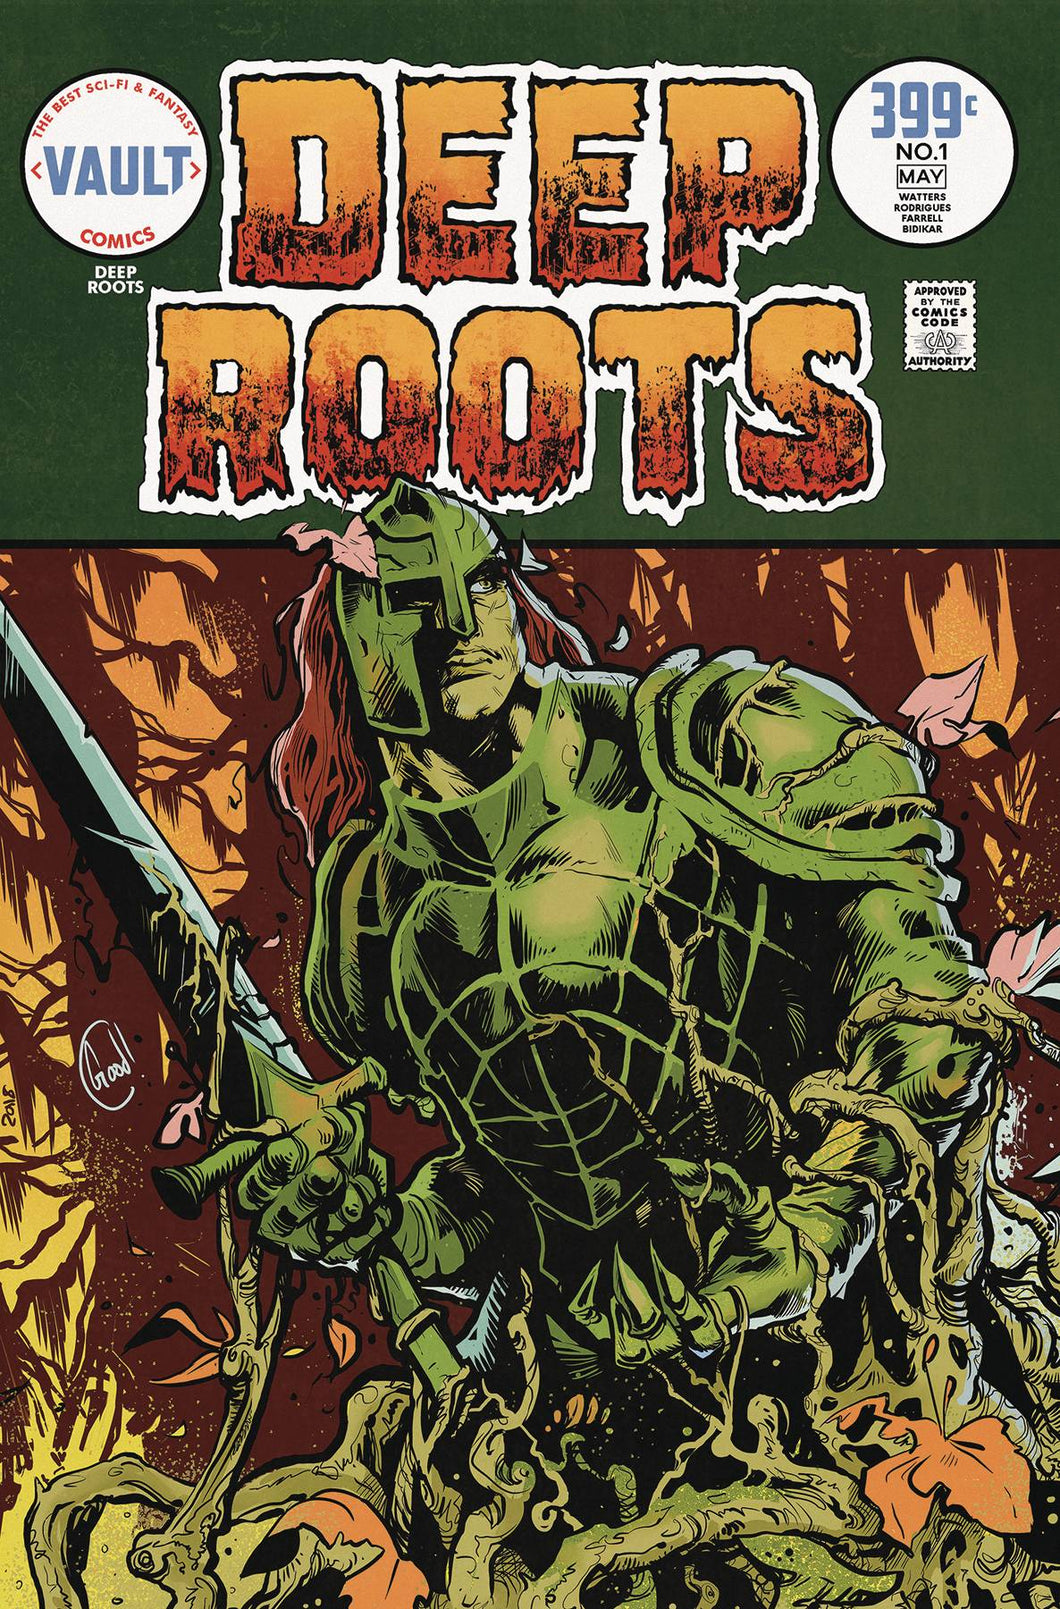 DEEP ROOTS #1 GOODEN VAR (2ND PTG) SWAMP THING #9 COVER SWIPE FOC 05/07 (ADVANCE ORDER)